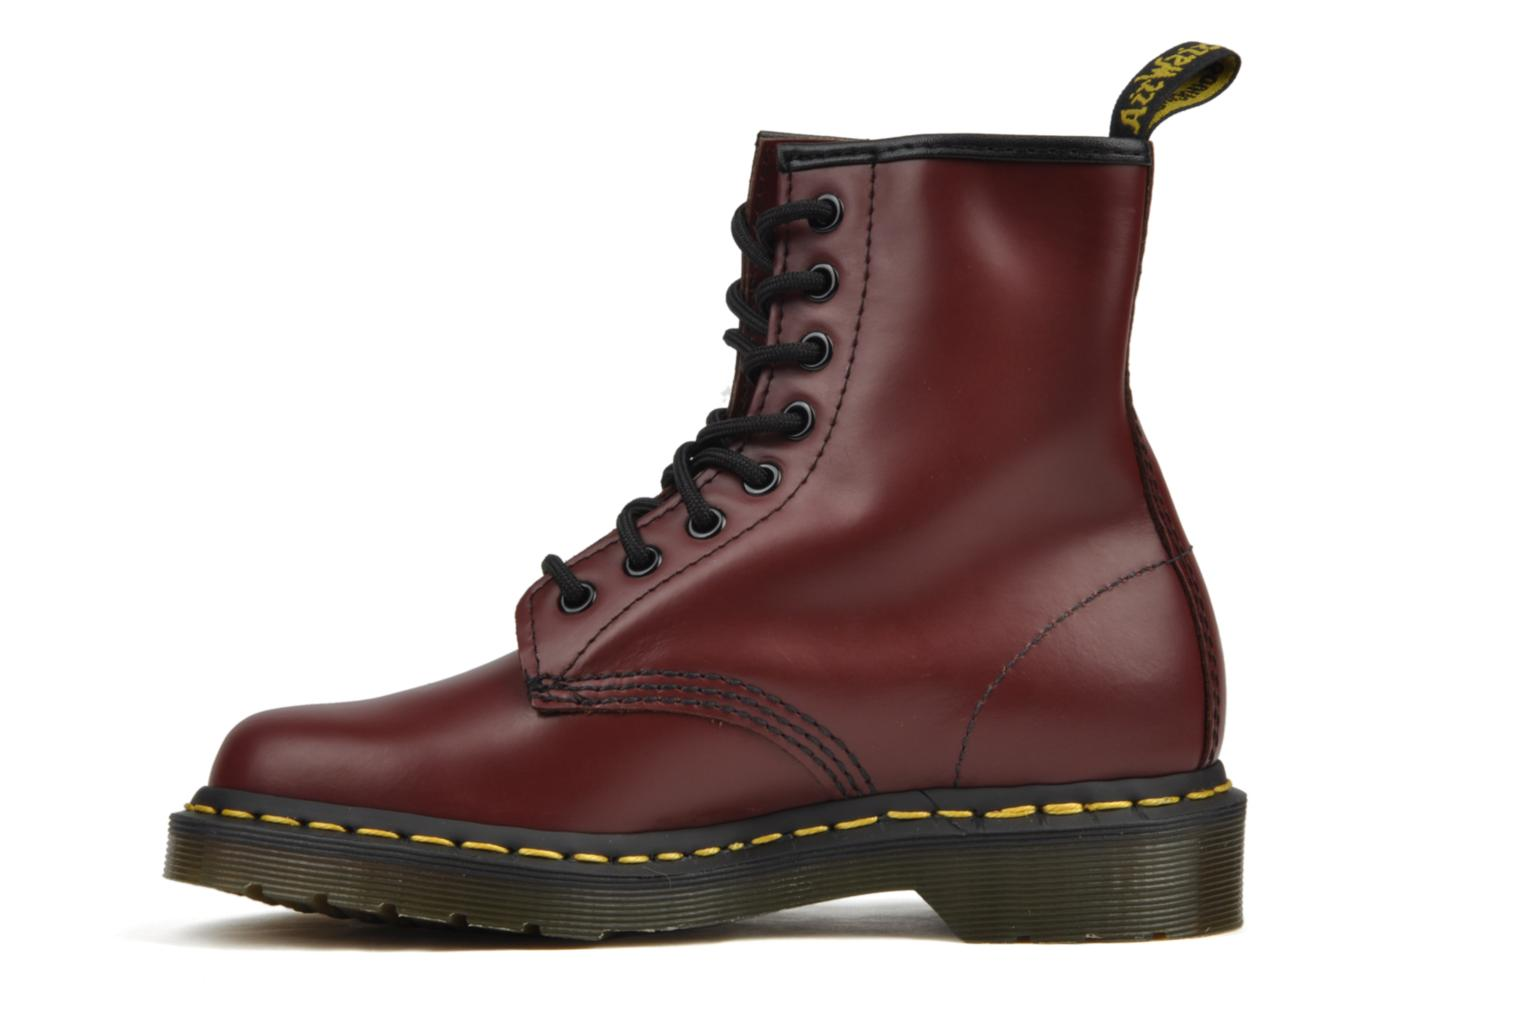 Bottines et boots Dr. Martens 1460 M Bordeaux vue face